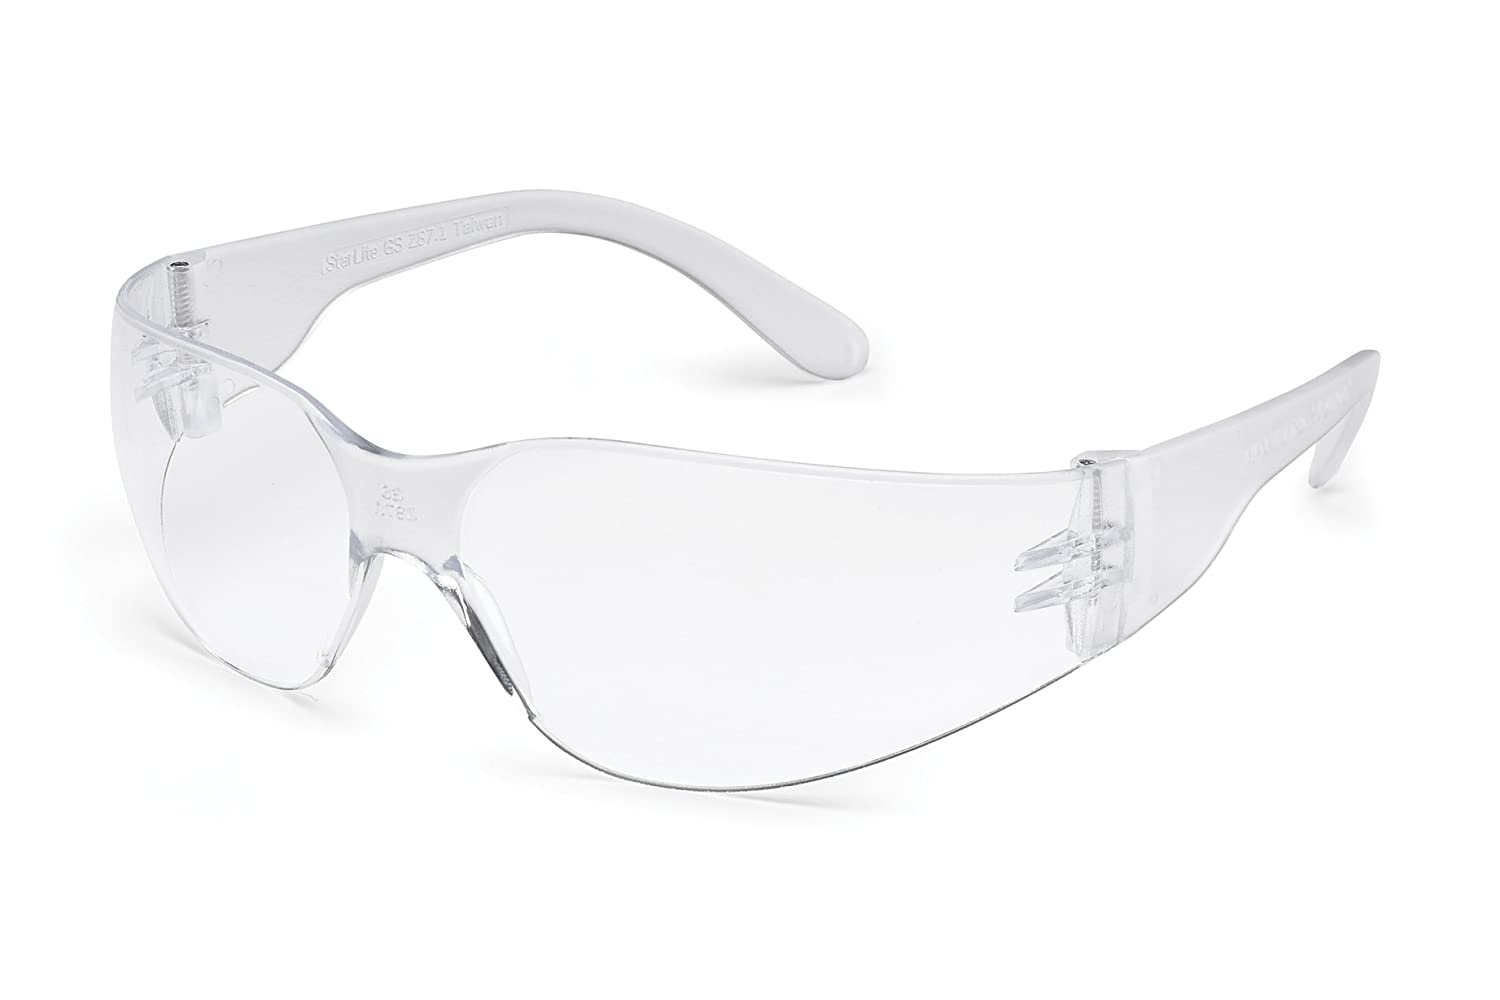 Gateway Safety 4679B UL-Certified Glasses Clear 『1年保証』 マーケット Starlite